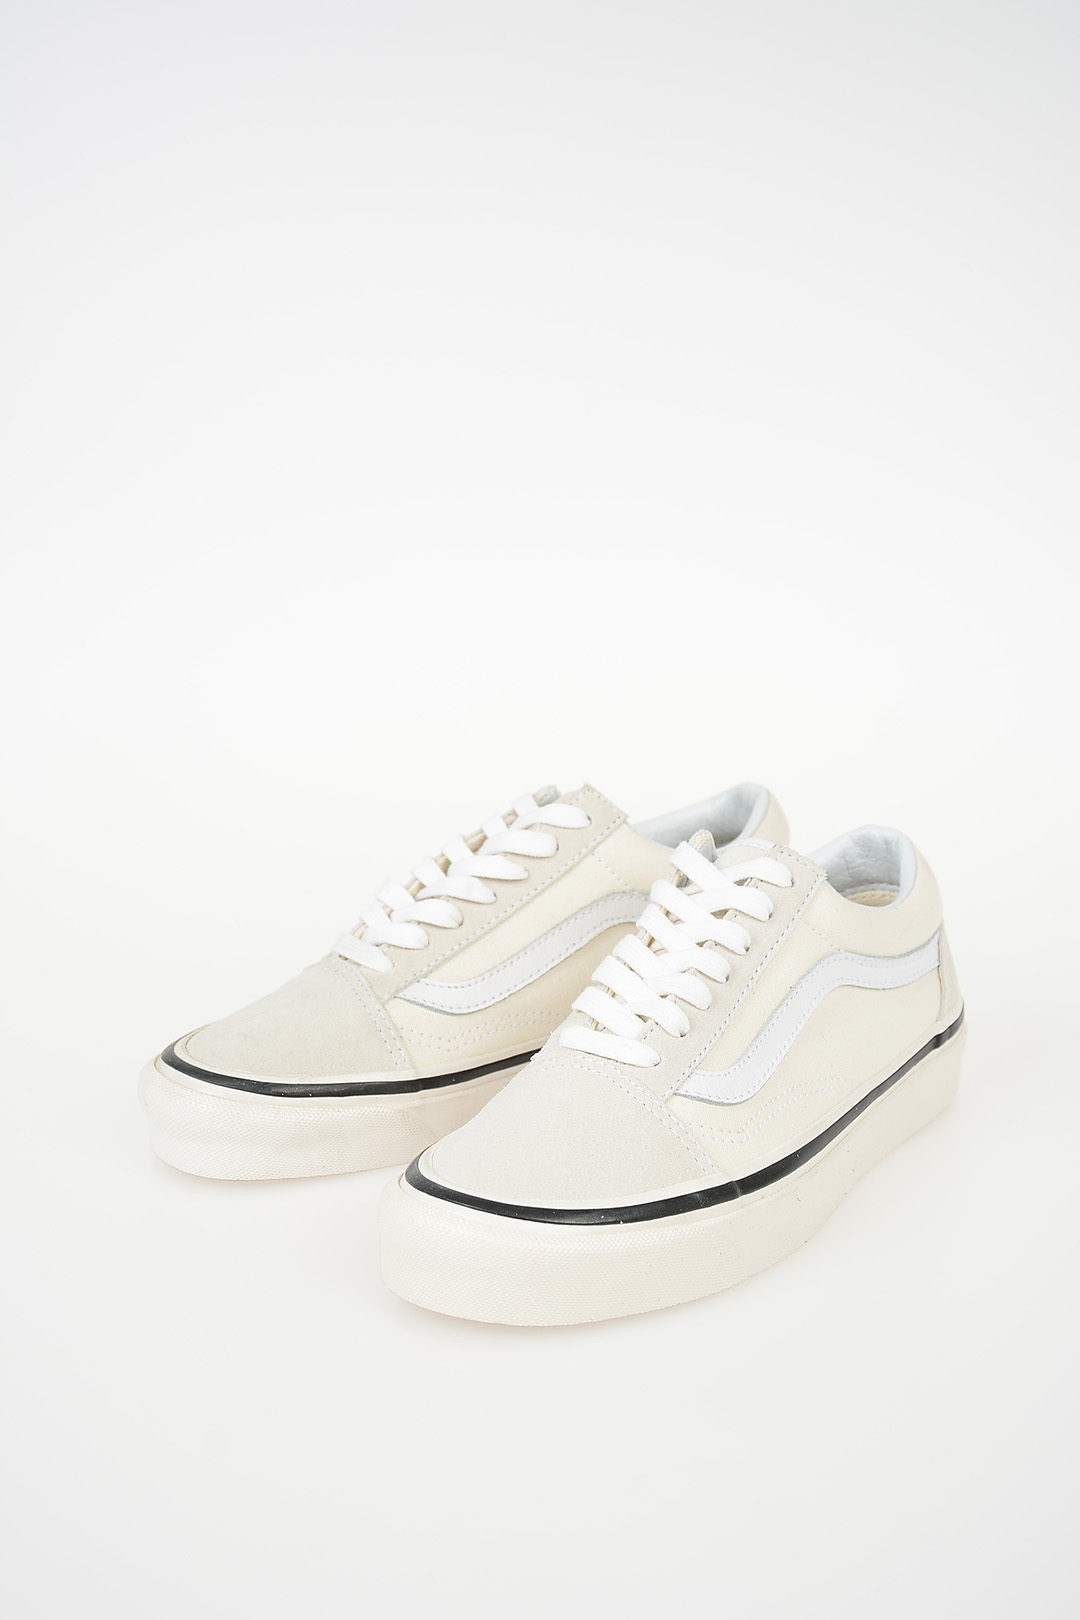 d22e288bf0 Vans Fabric and Leather OLD SKOOL Sneakers - Glamood Outlet